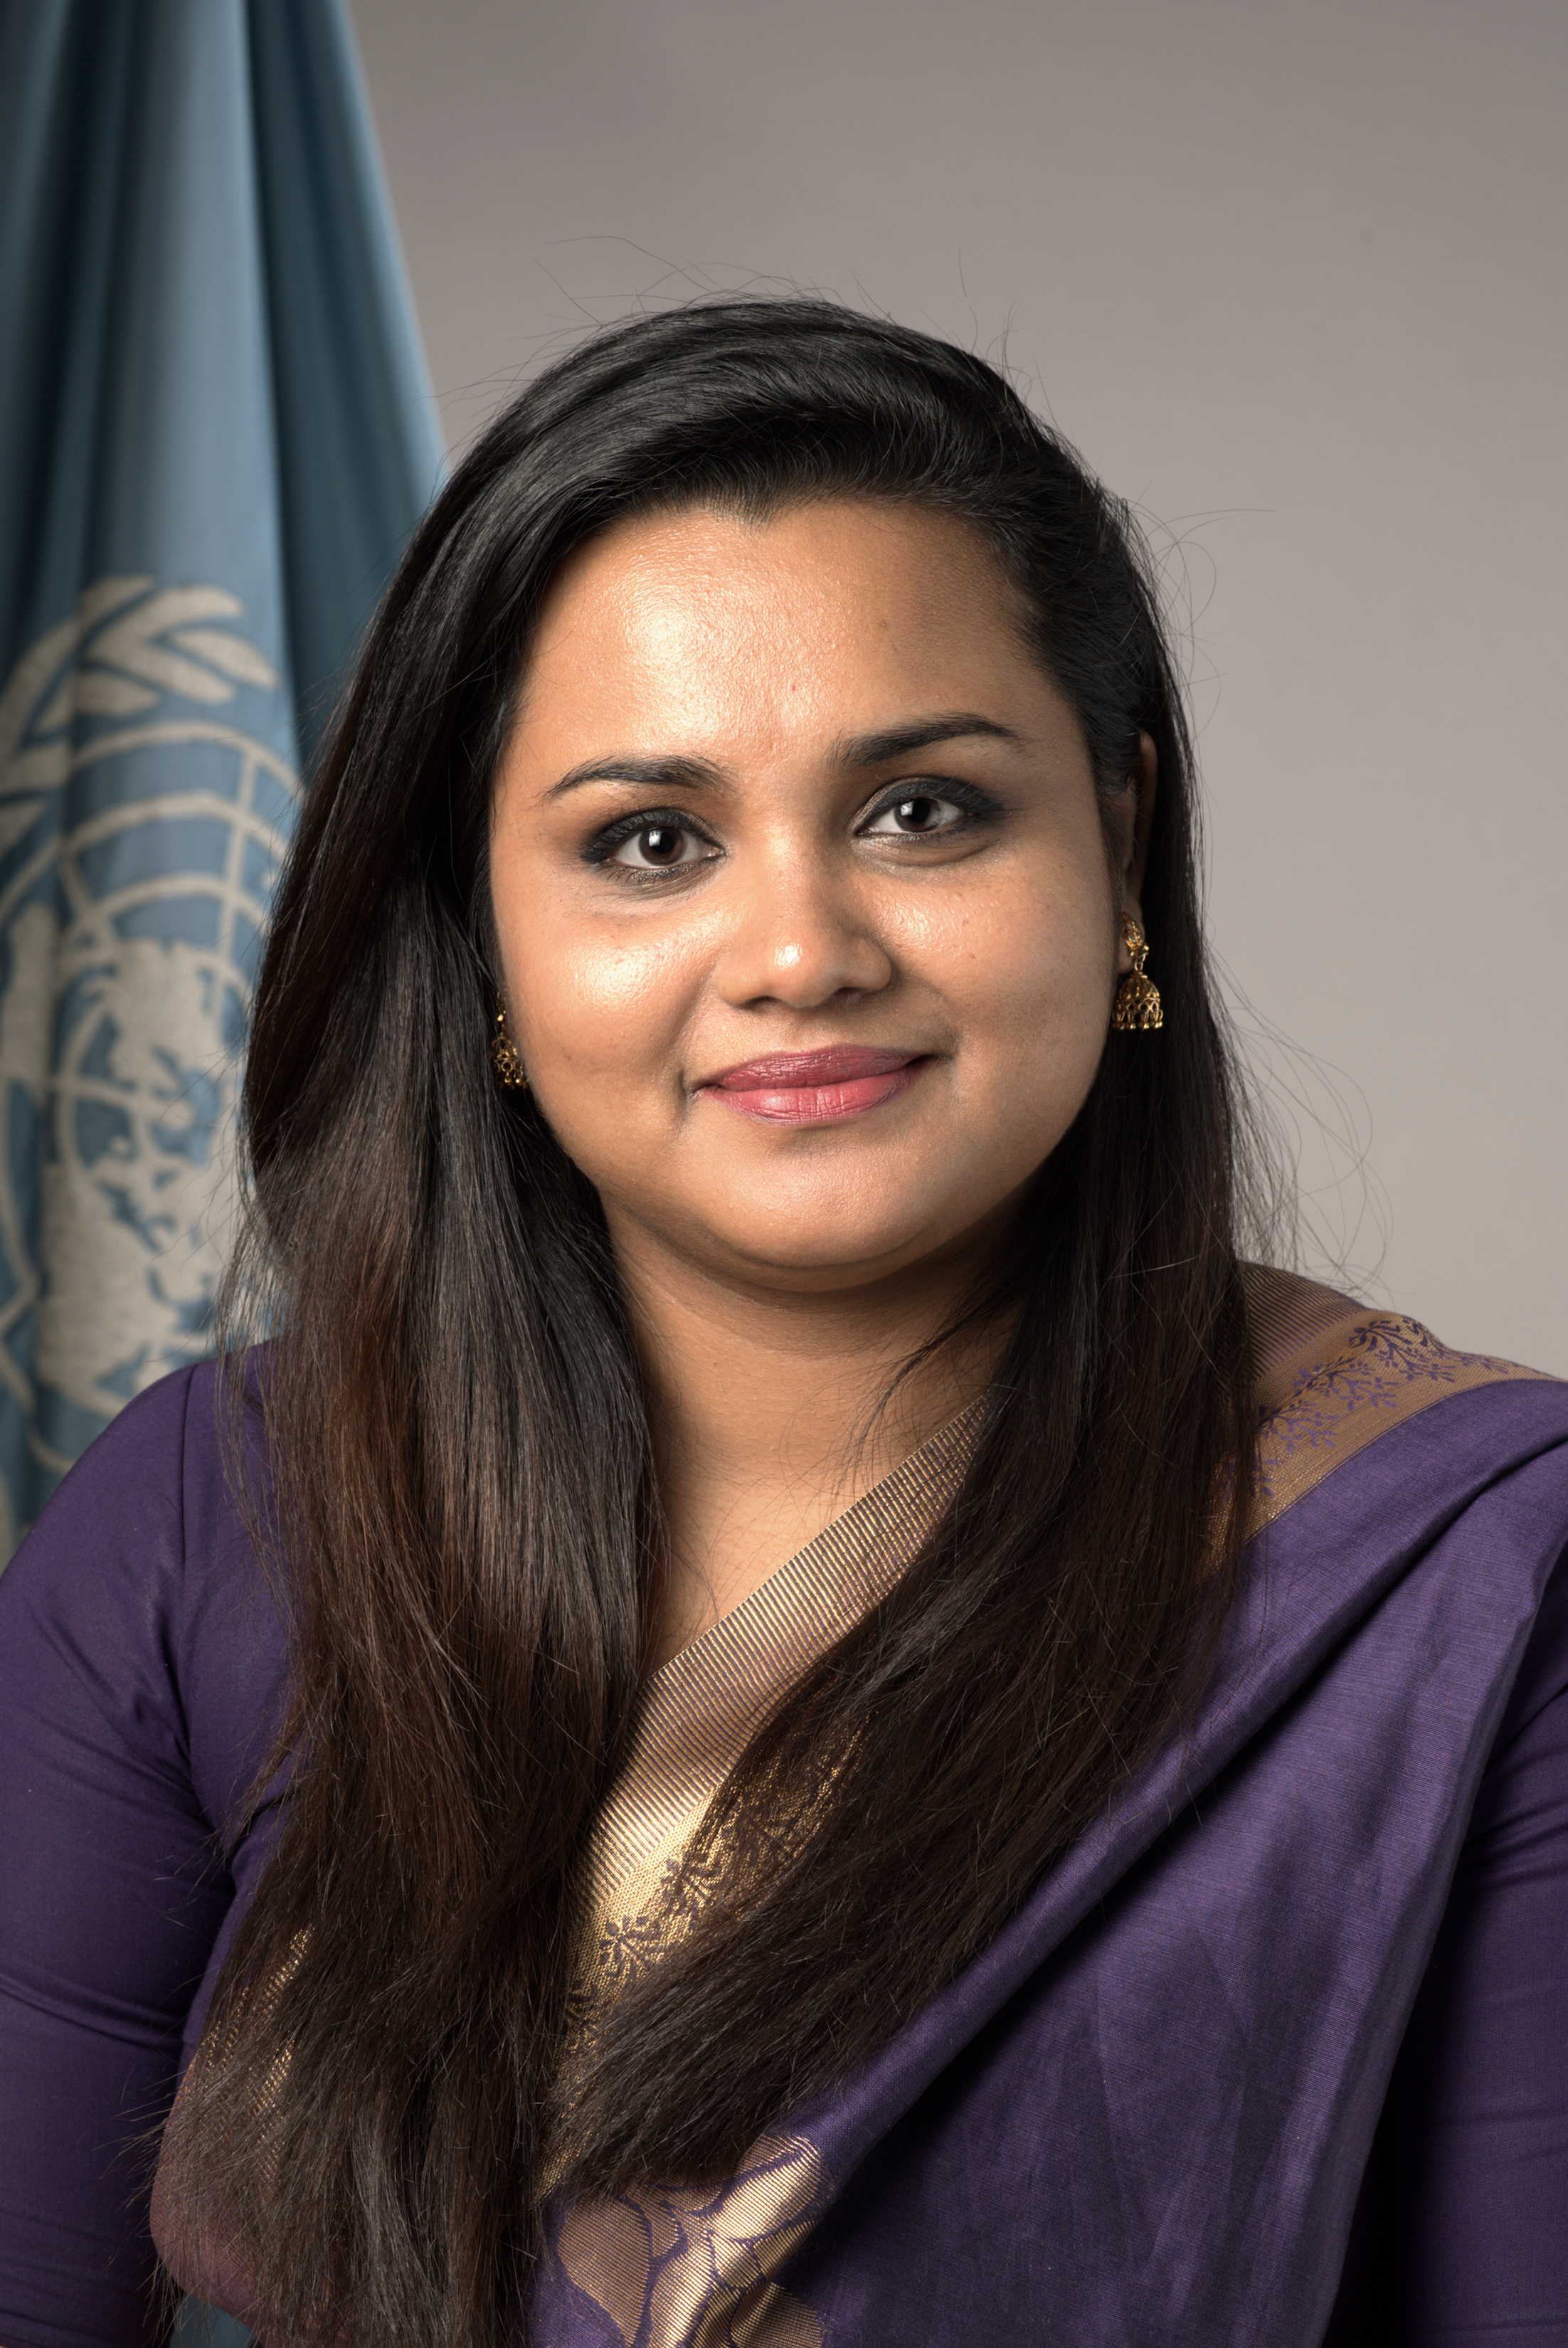 UN SGs Envoy on Youth